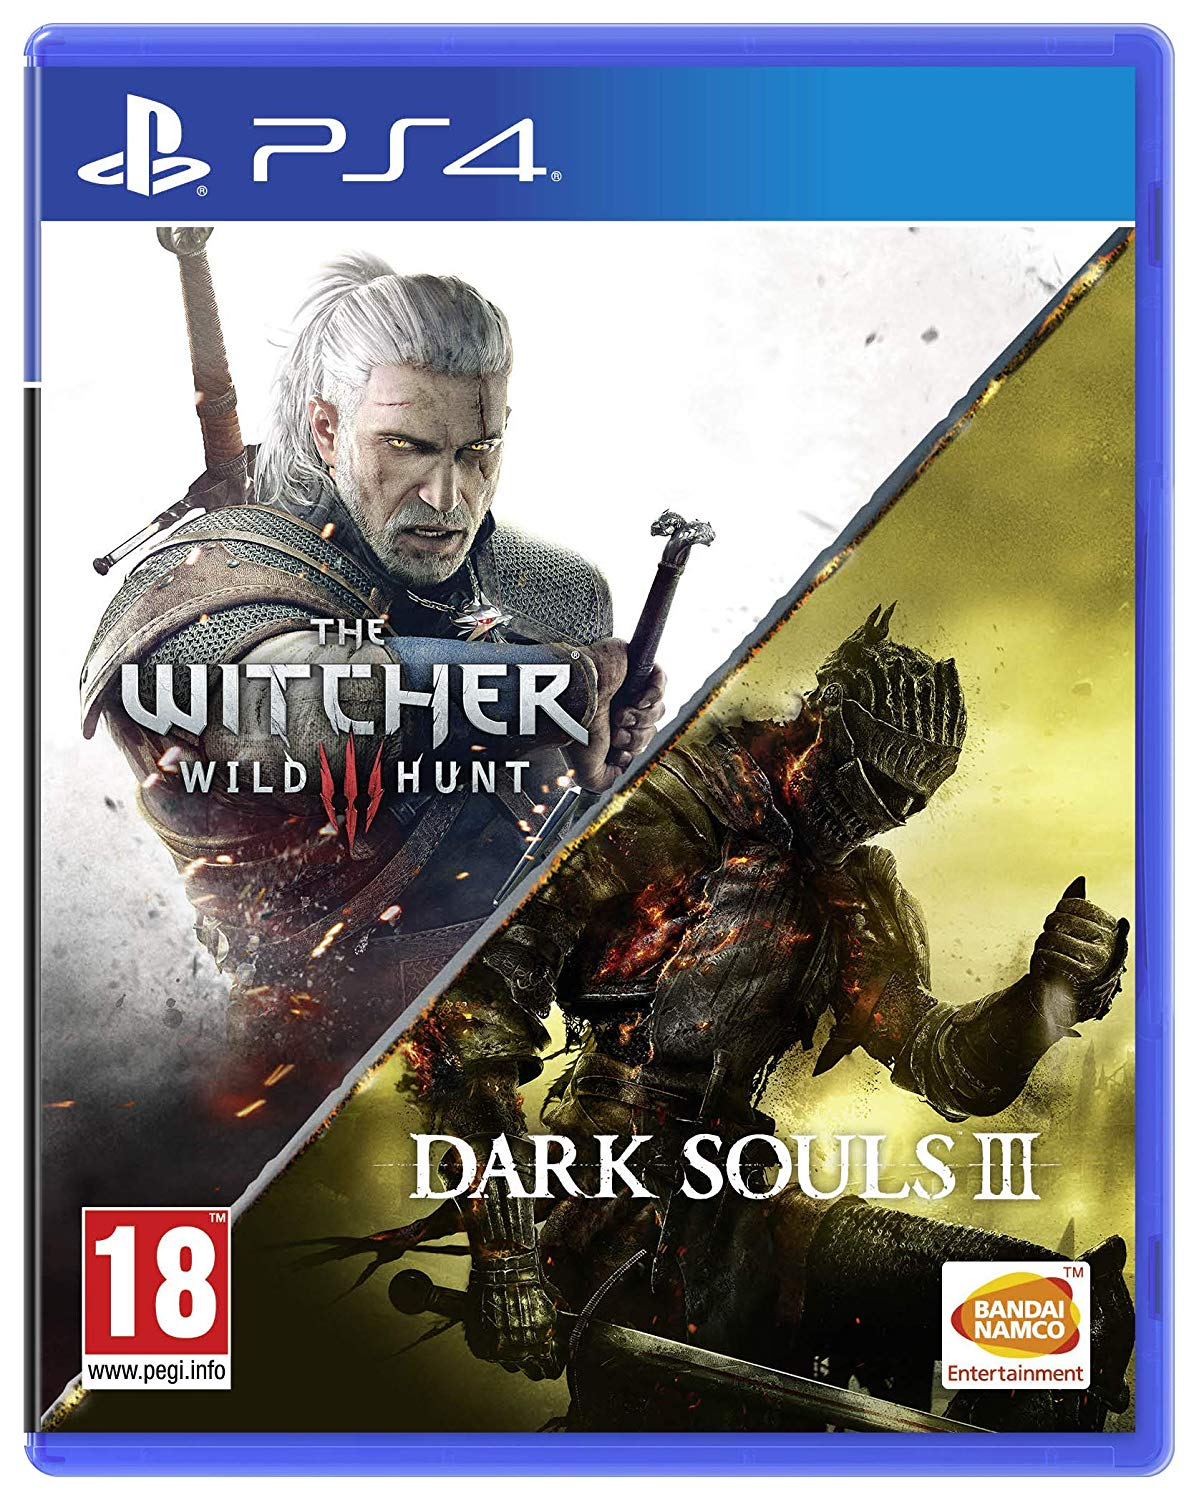 The Witcher 3 & Dark Souls 3 Double Pack (PS4)